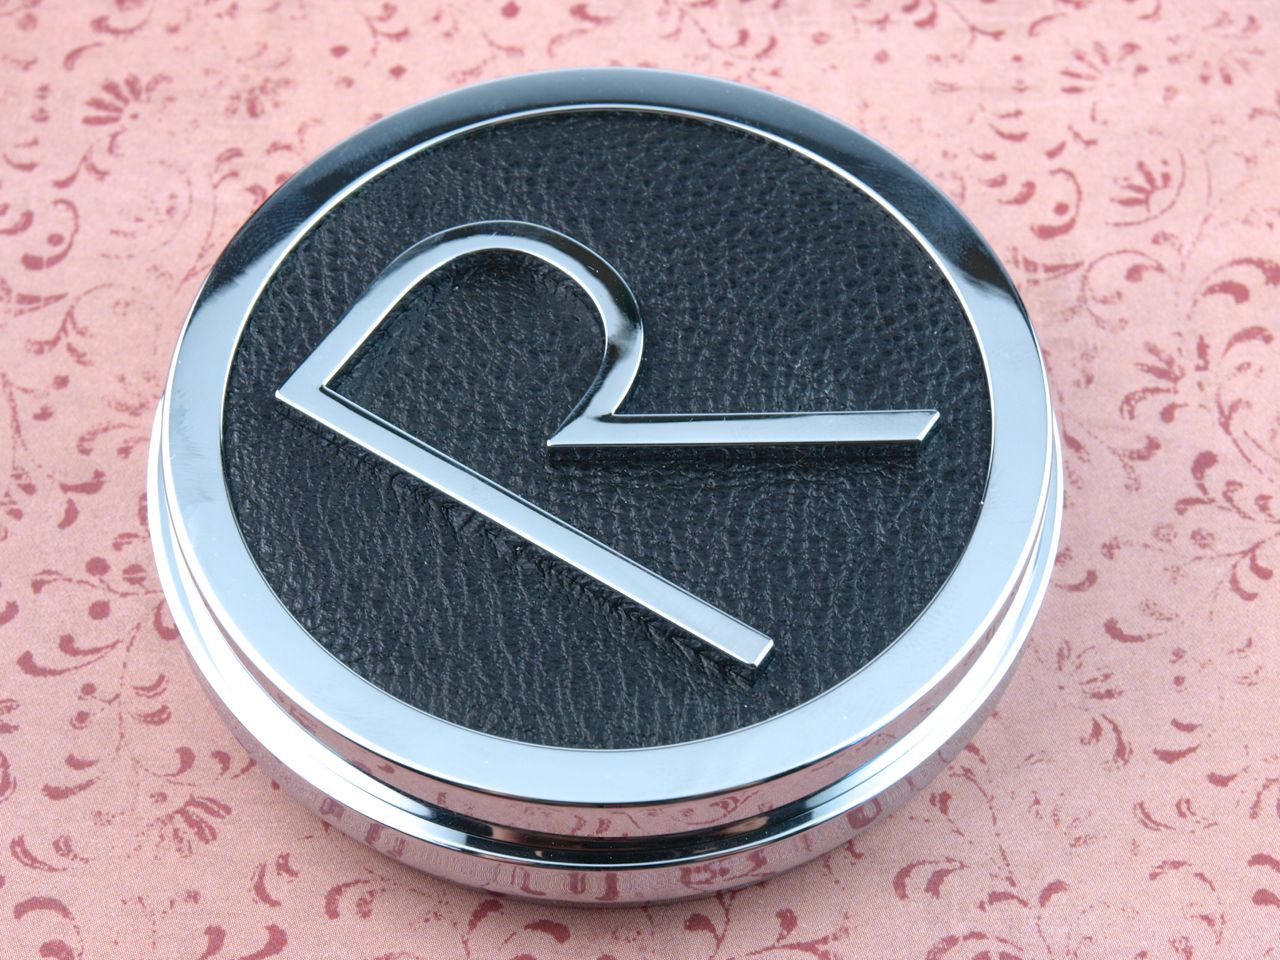 Rodial Instaglam Compact Deluxe Translucent HD Powder: Review